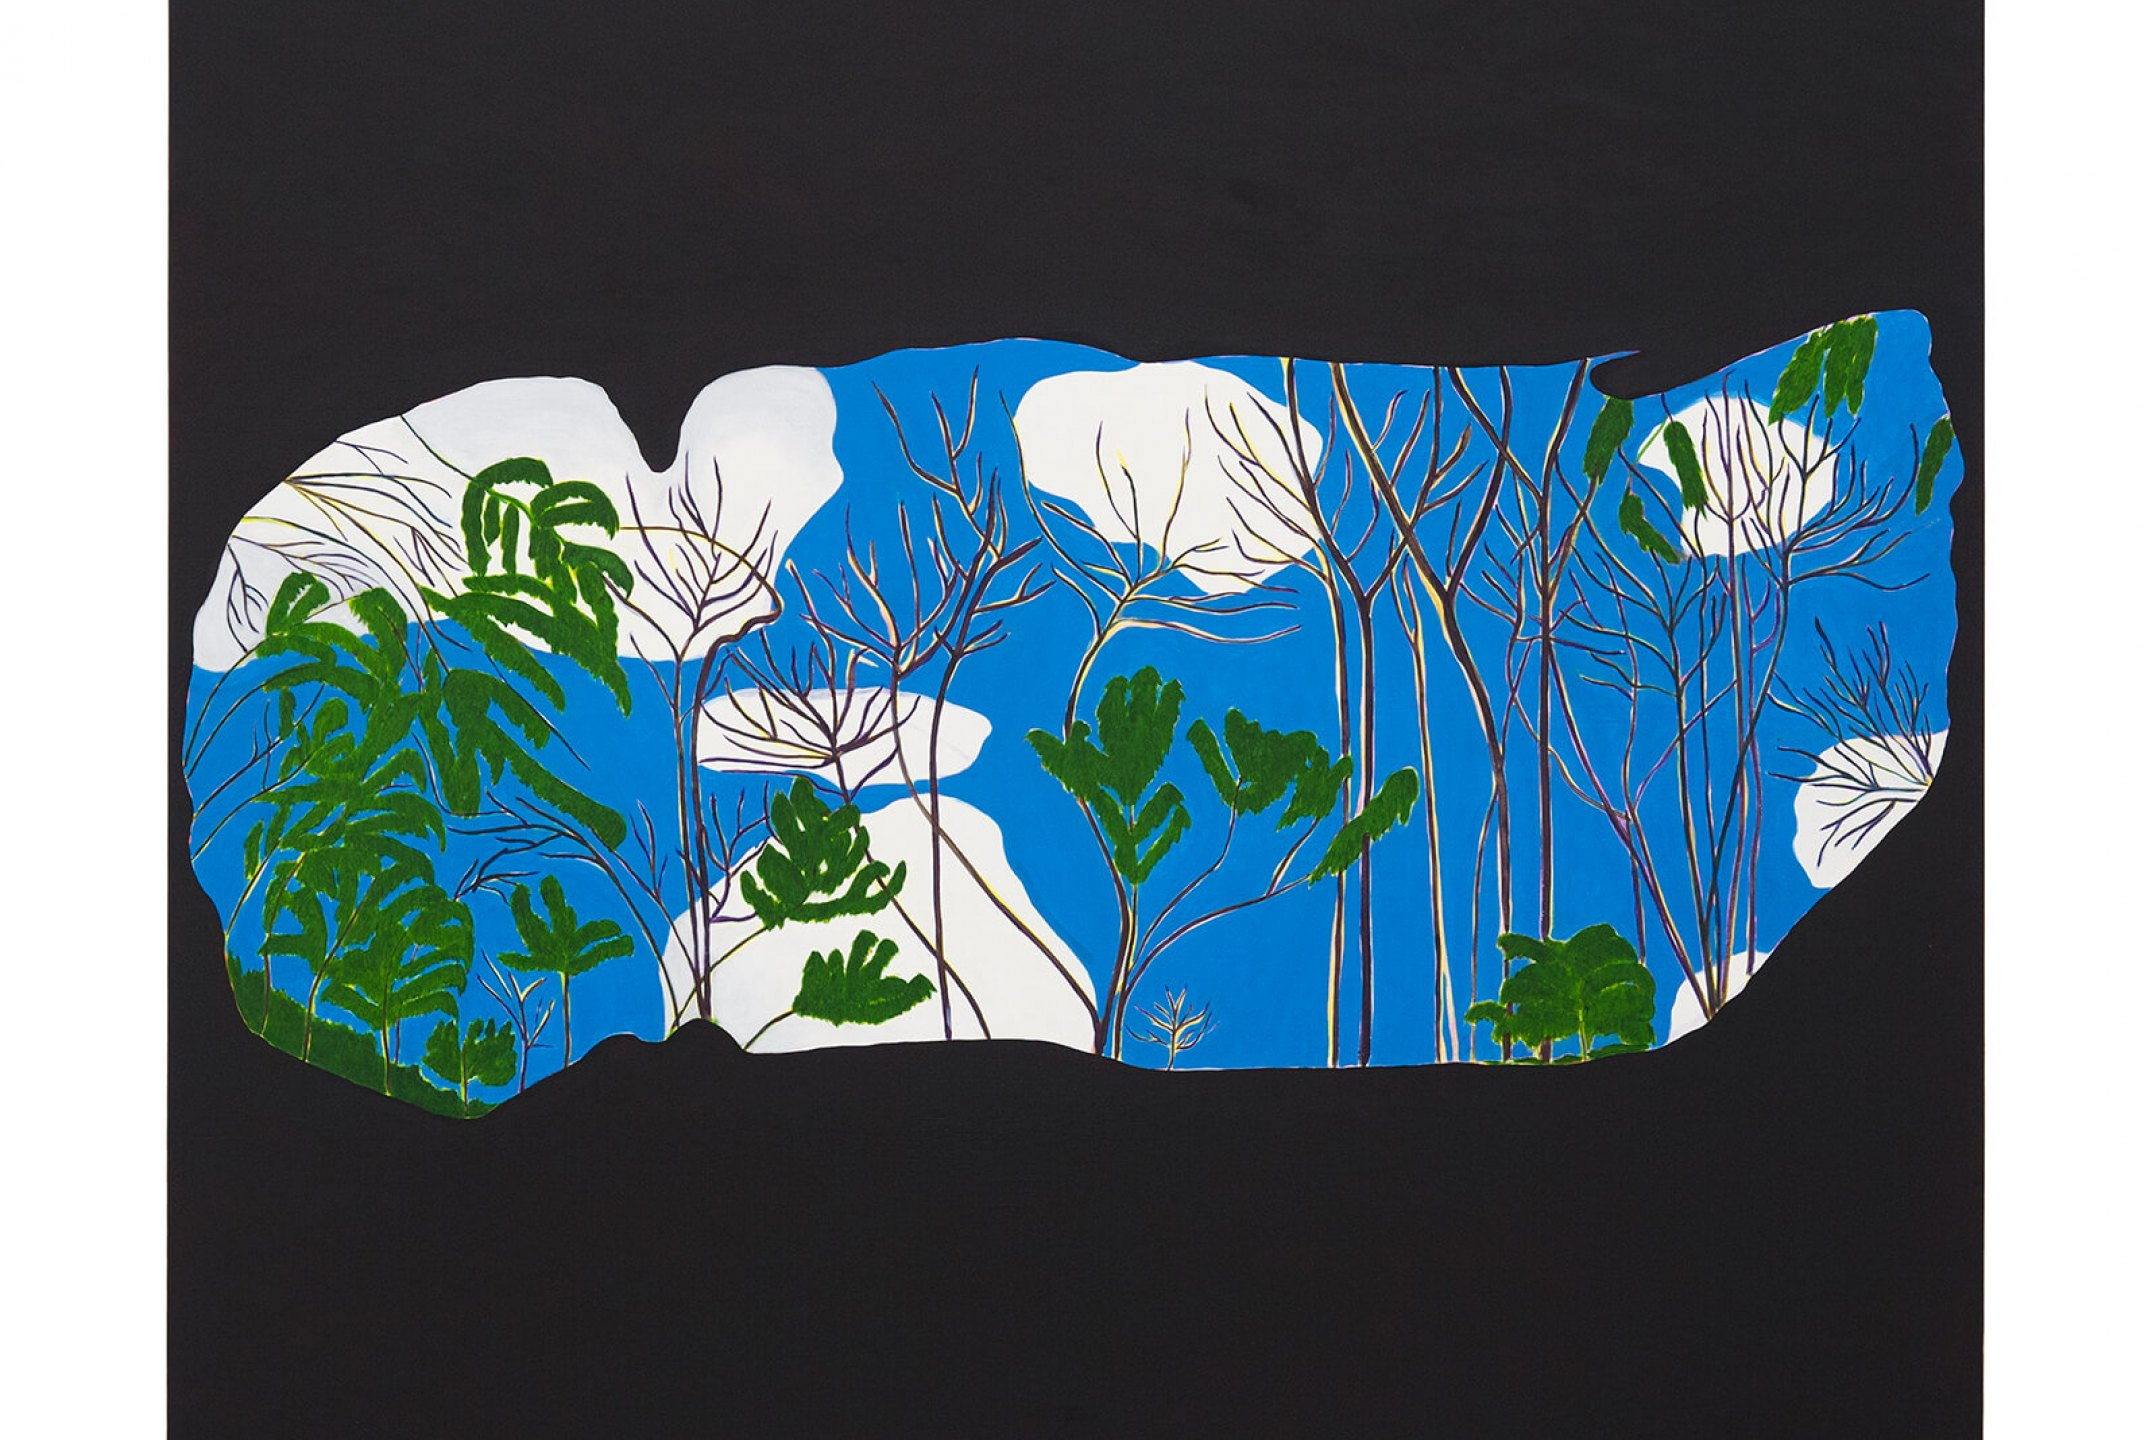 Patricia Leite, <em>Grotto,</em> 2014, oil on wood, 160 × 180 cm - Mendes Wood DM